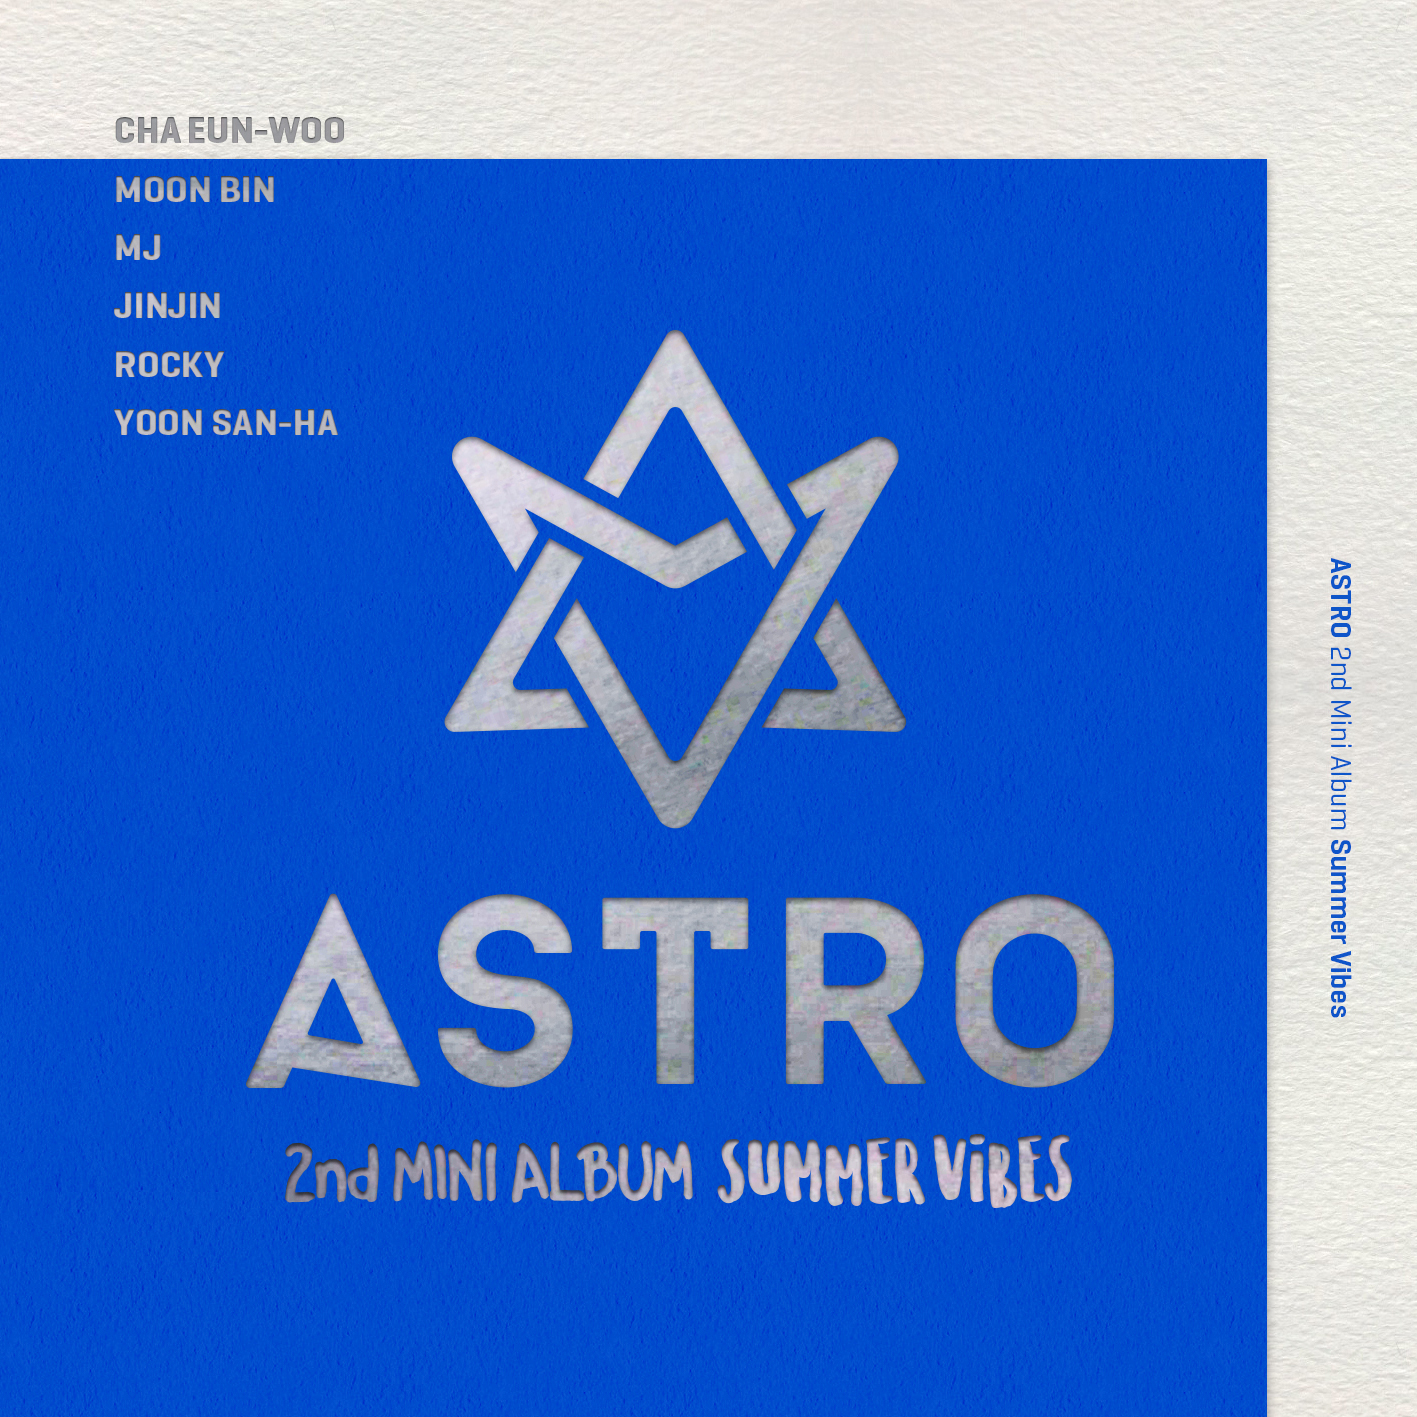 Image - ASTRO Summer Vibes Album Cover.png